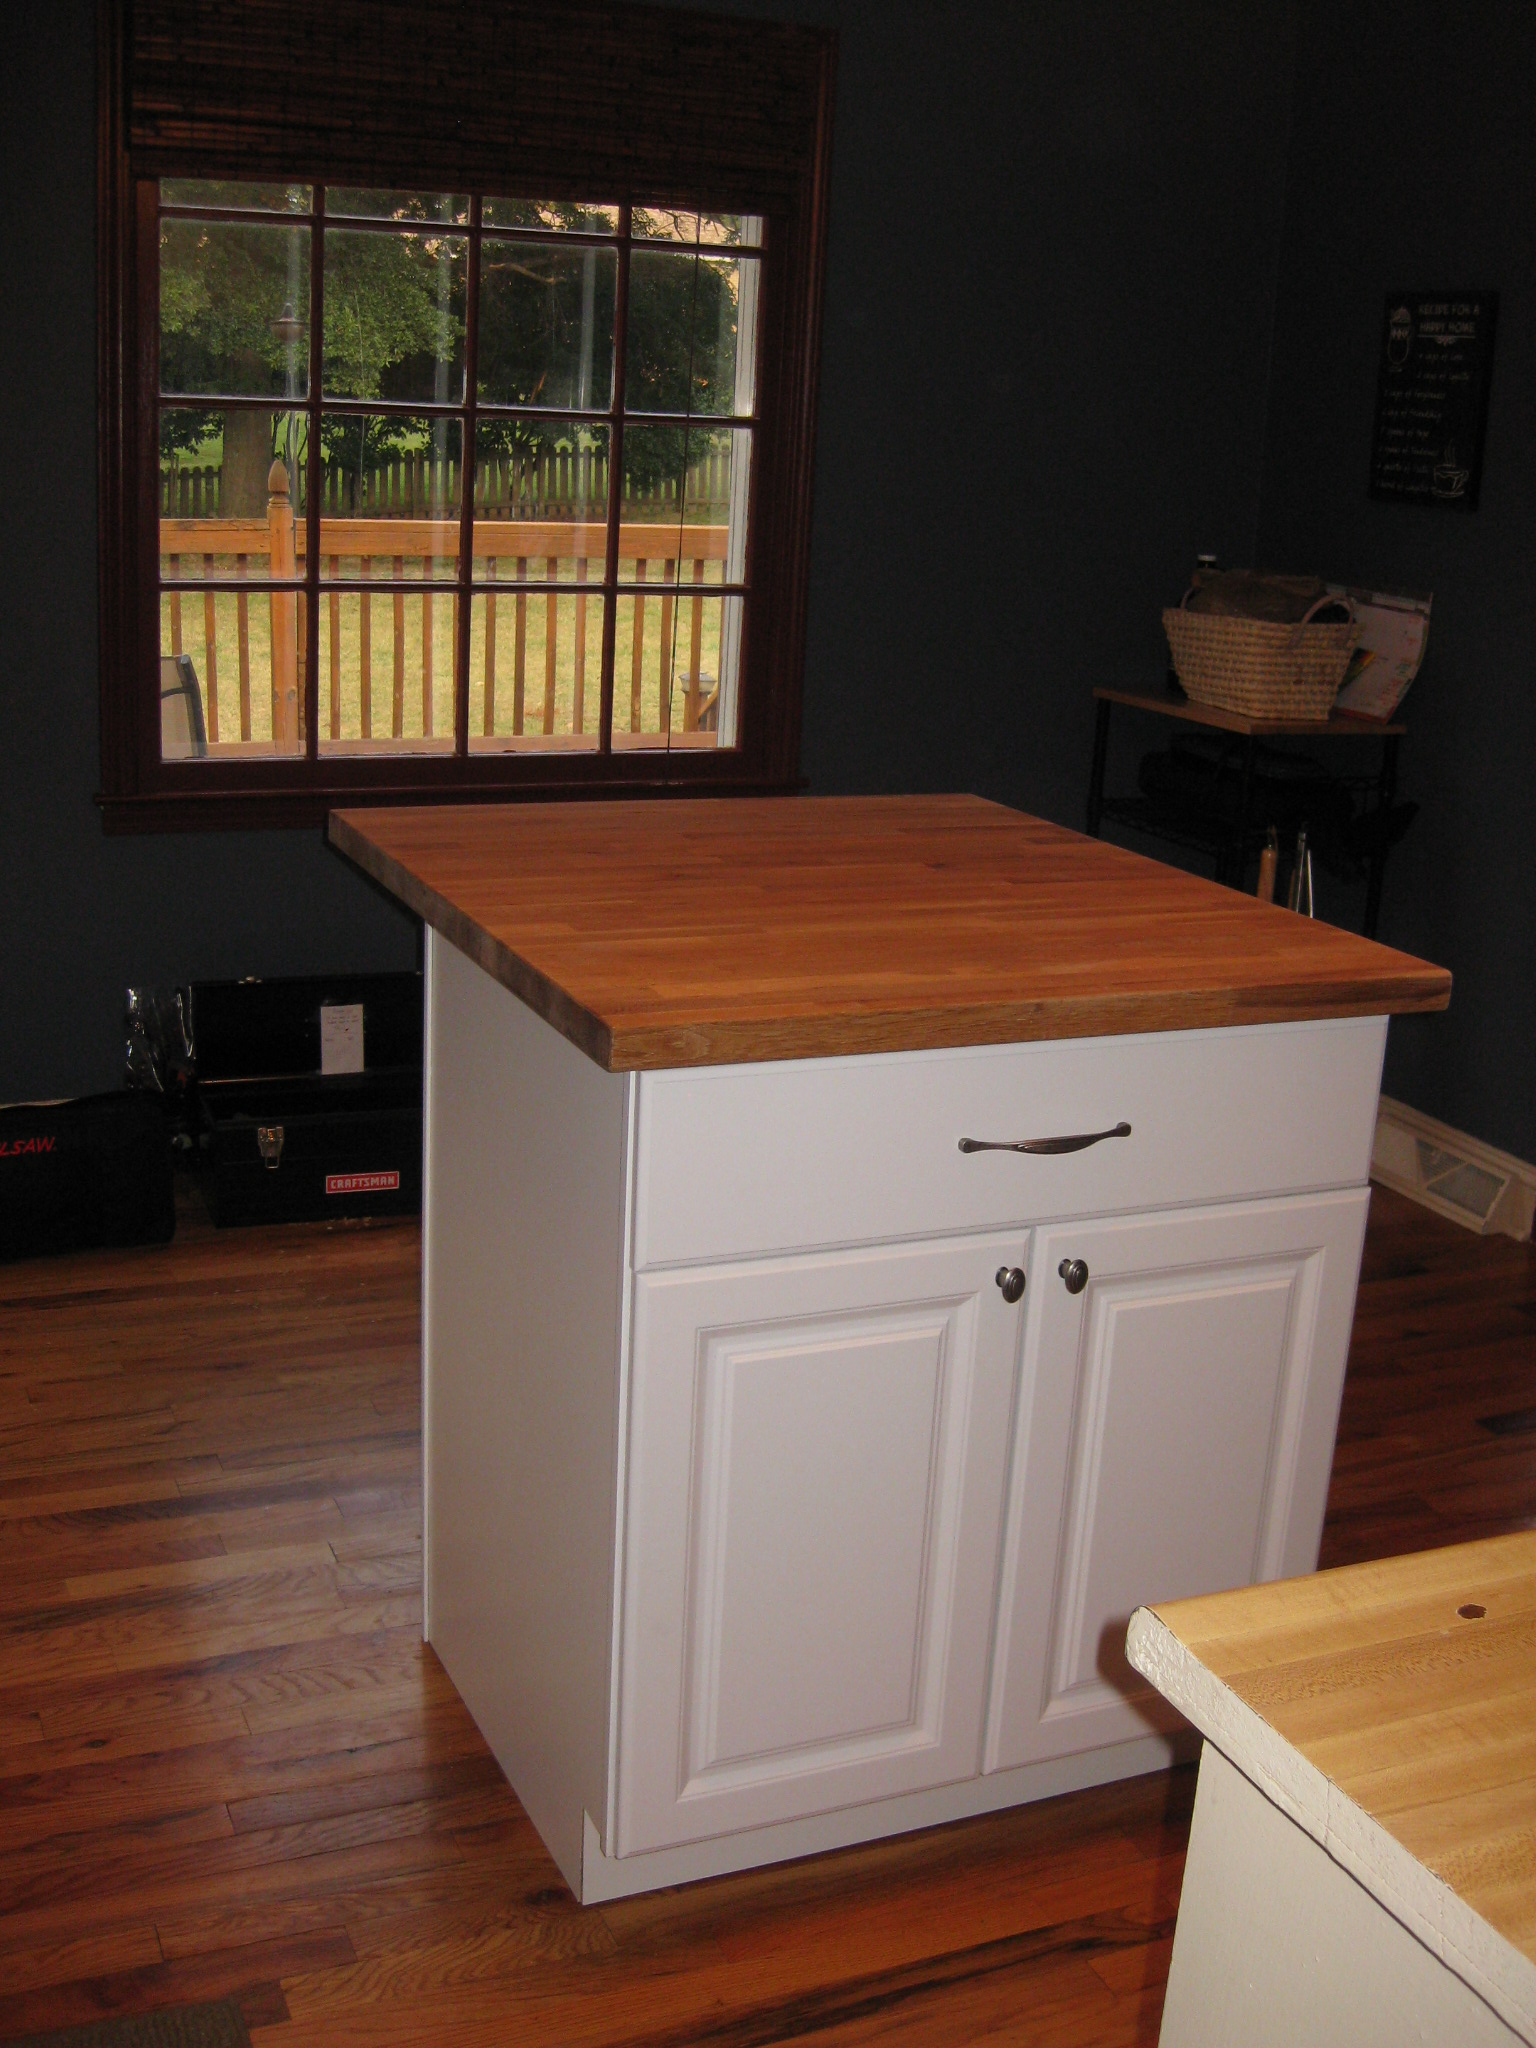 DIY Kitchen Island Tutorial from premade cabinets